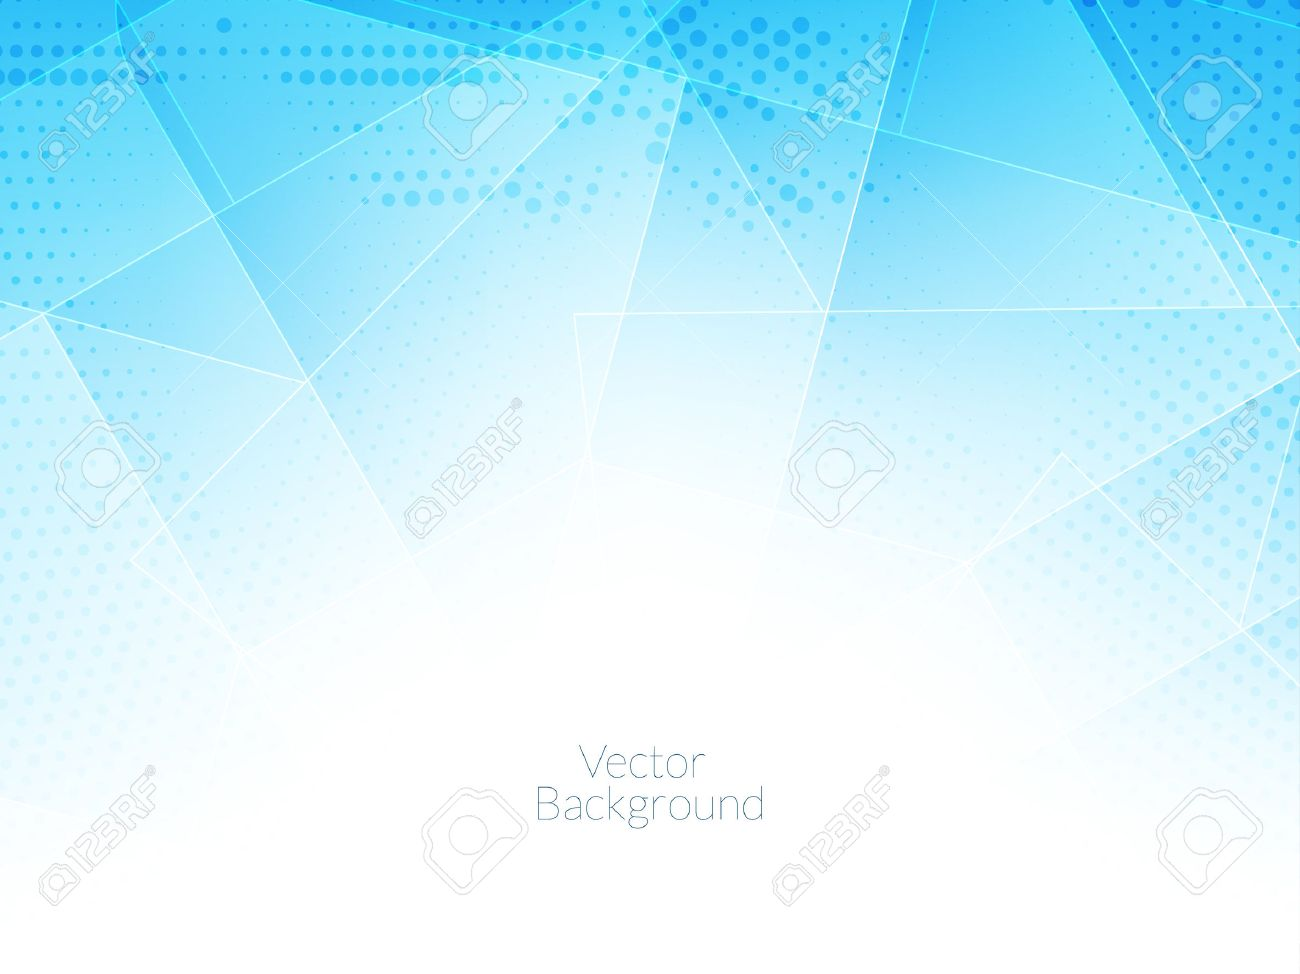 elegant blue color background with polygonal shapes. Stock Vector - 45155765